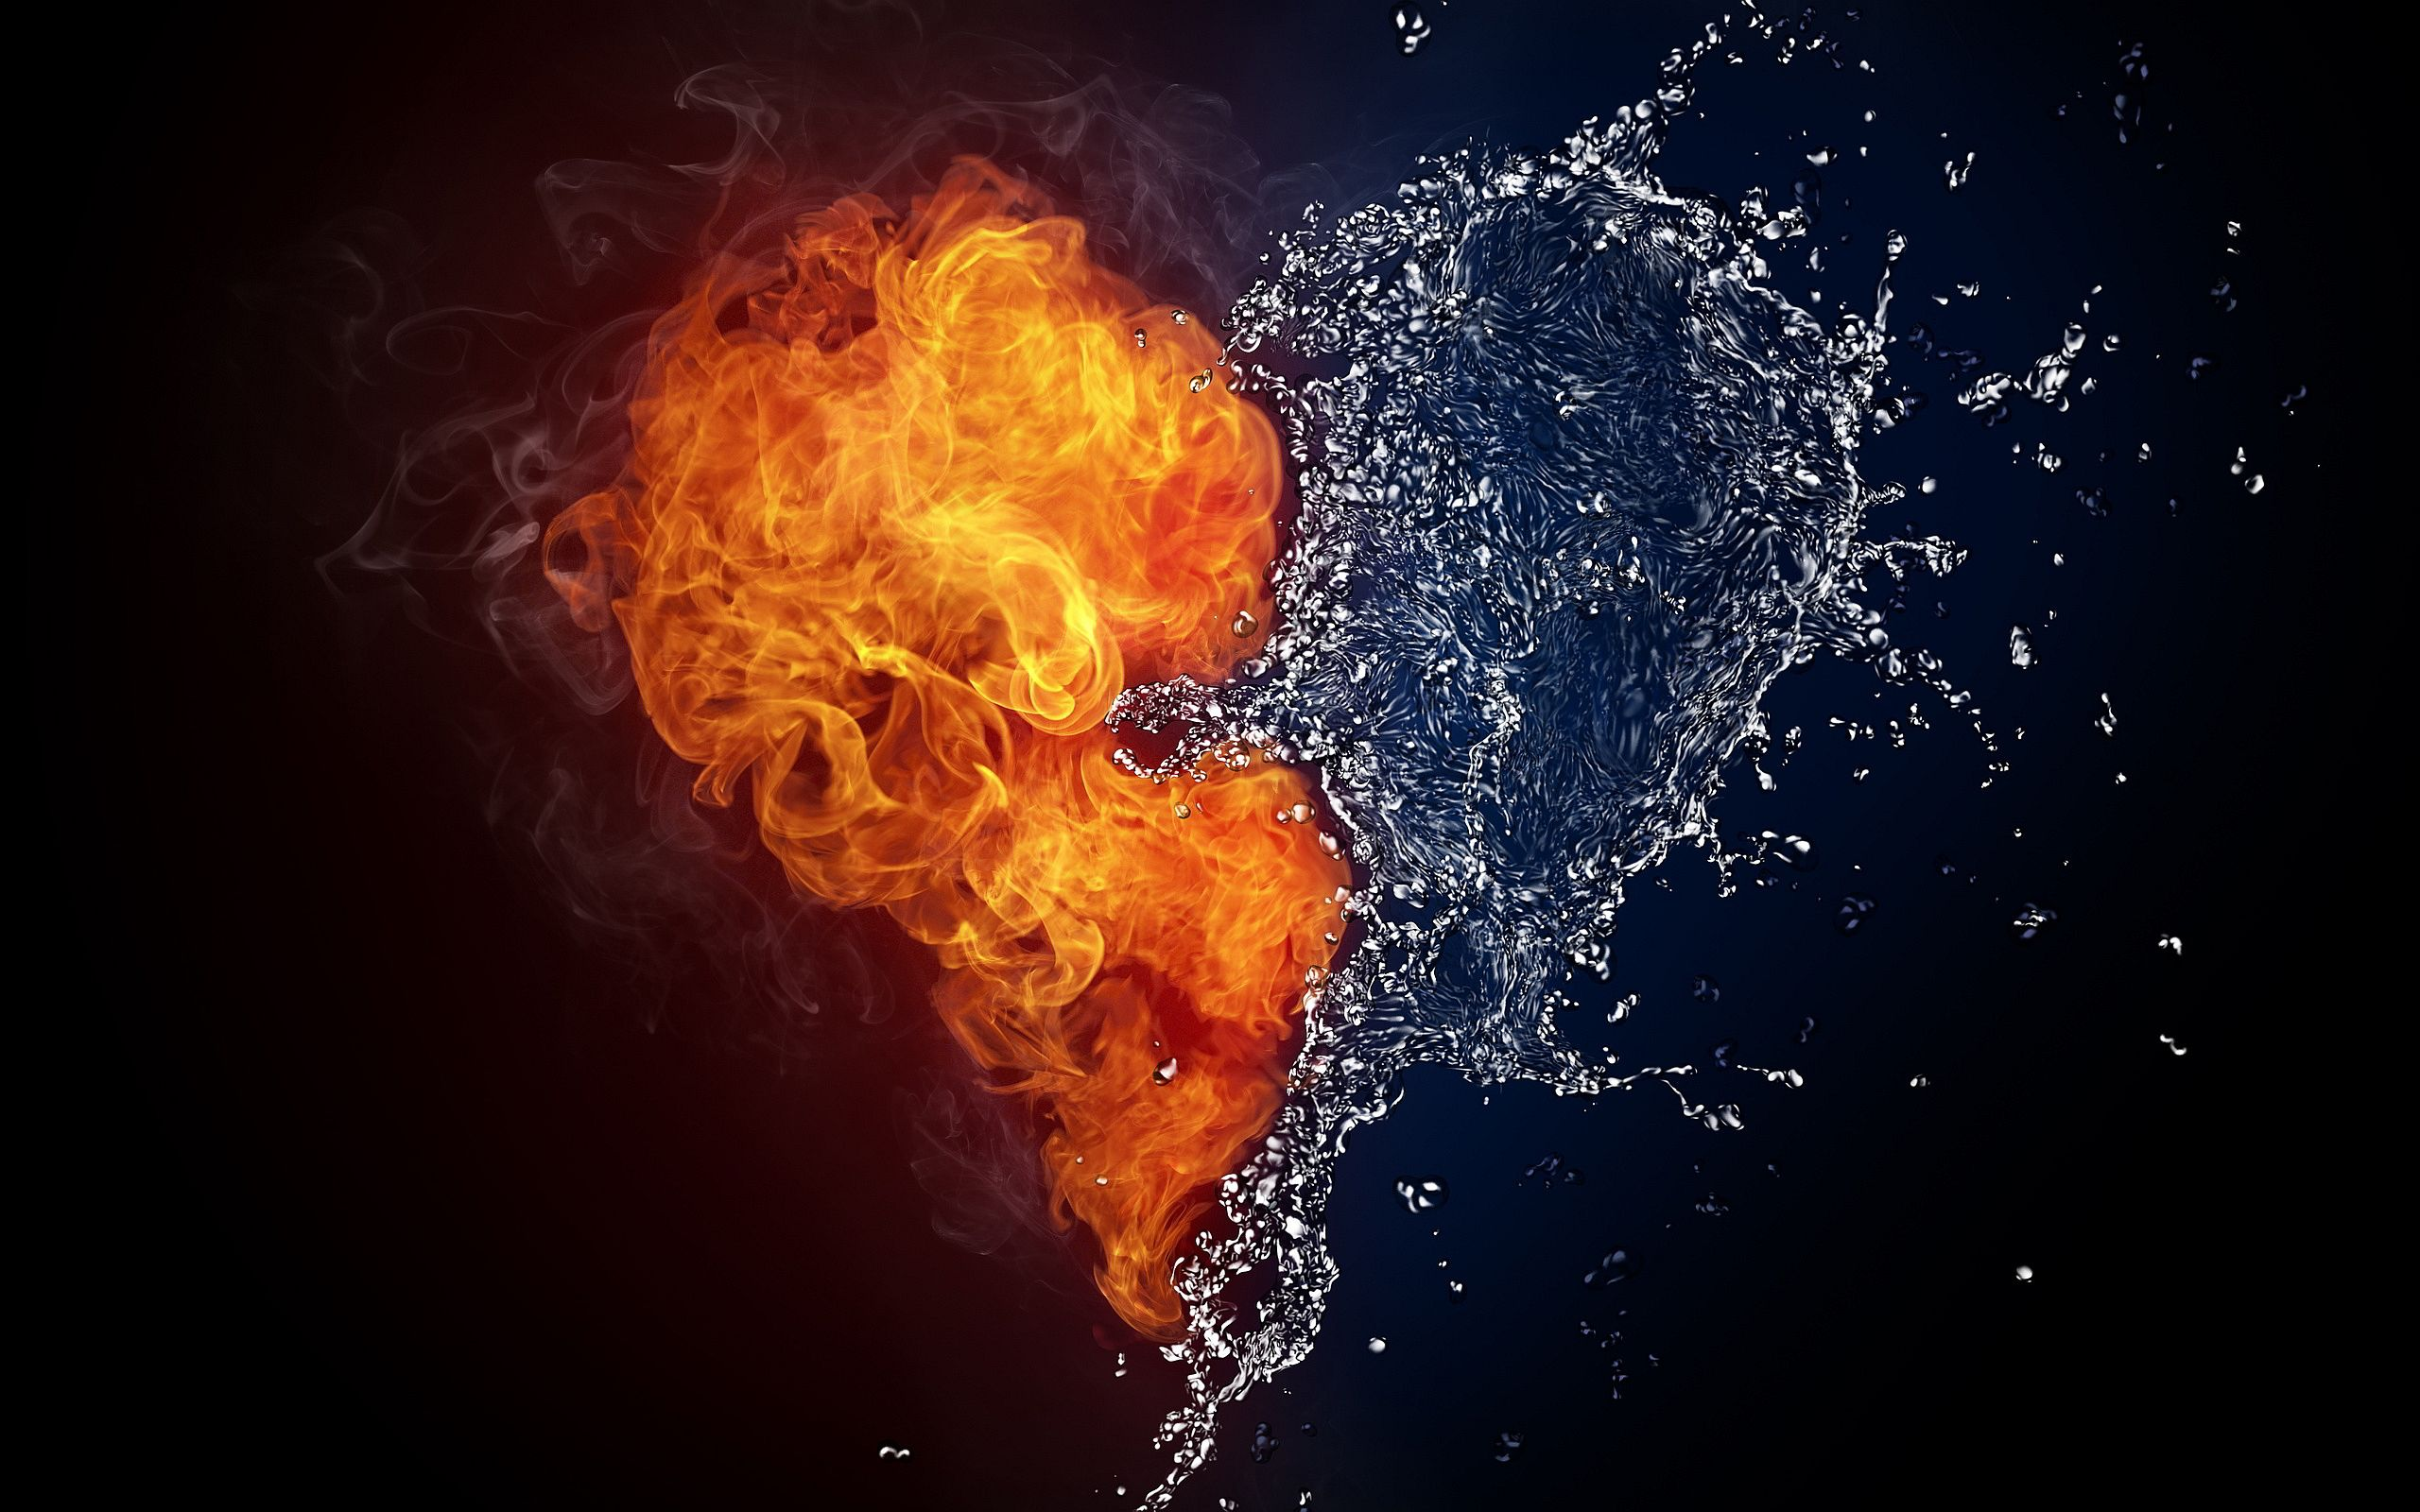 Love Breathes Fire Like The Hottest Flame Burning So Brightly And Leading Sane Ice HeartFire ArtHeart WallpaperHearts